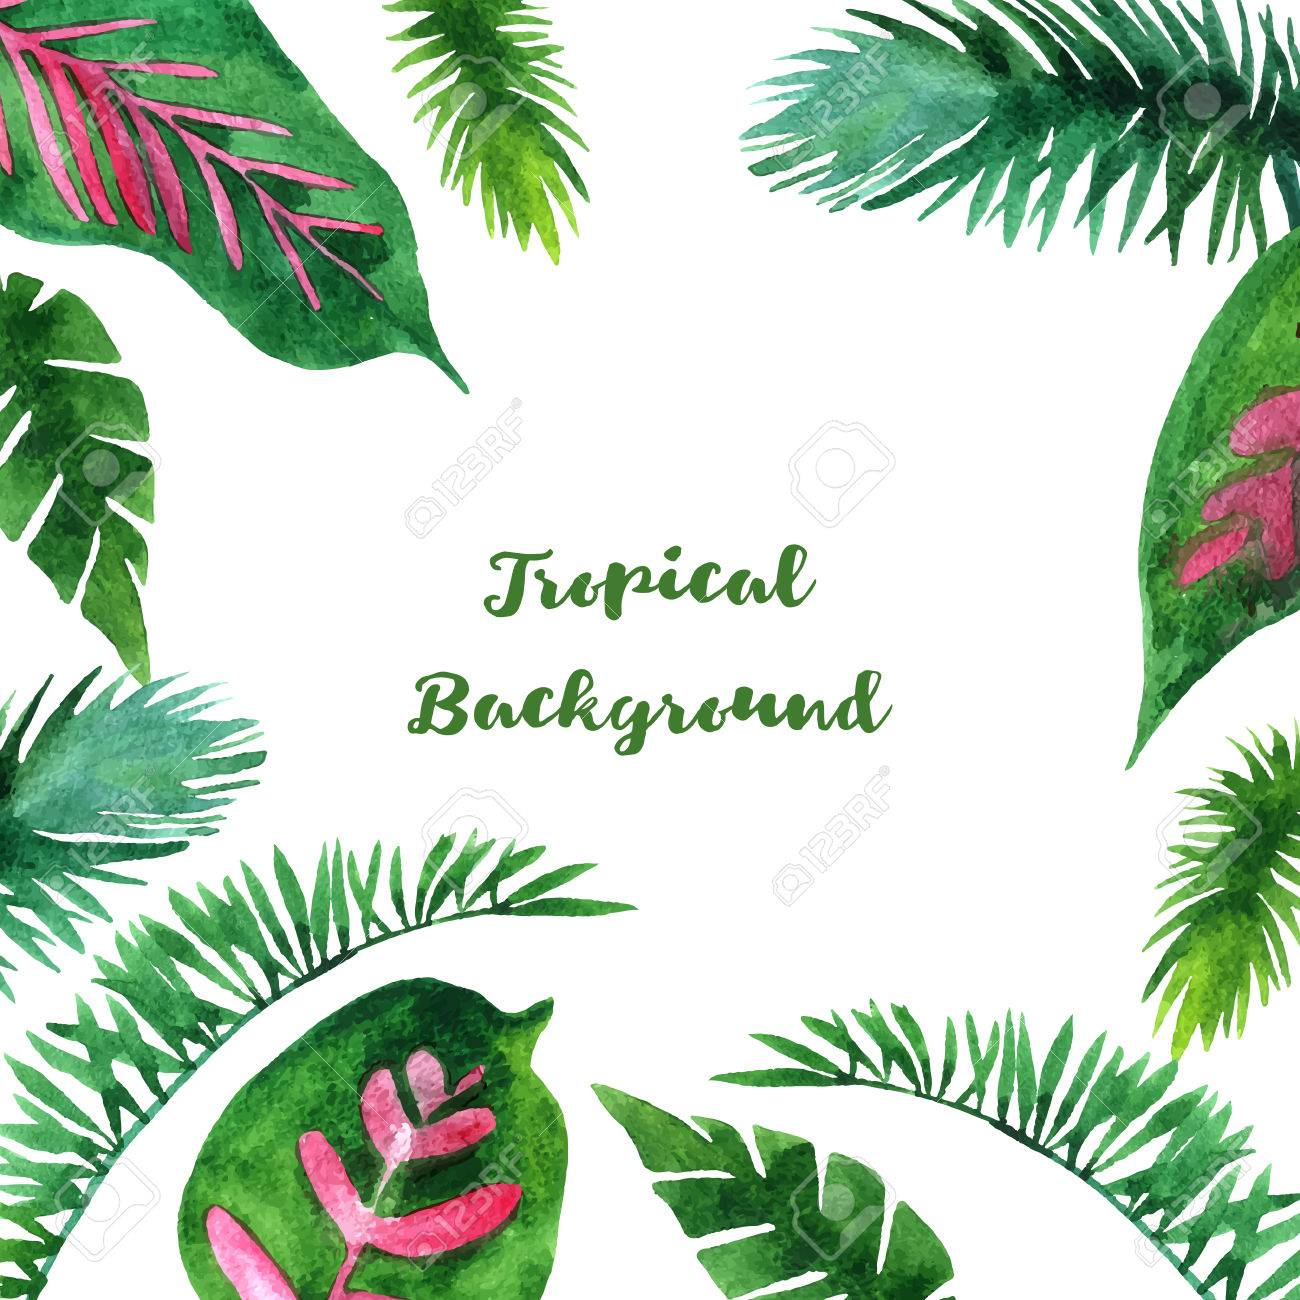 Palm Tree Leaf Drawing at GetDrawings.com | Free for personal use ...